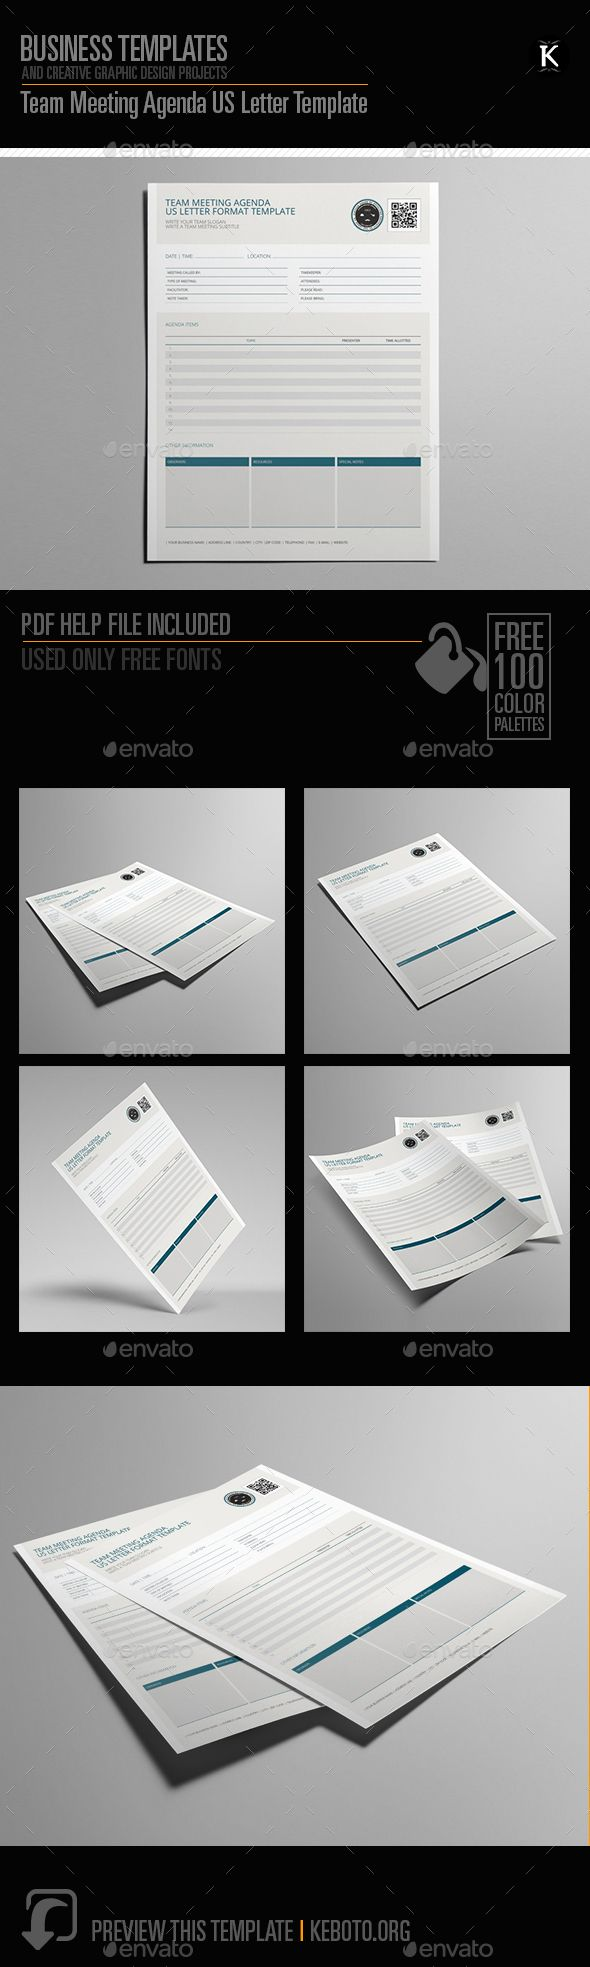 Agenda Sample Format Entrancing Team Meeting Agenda Us Letter Template  Miscellaneous Print .